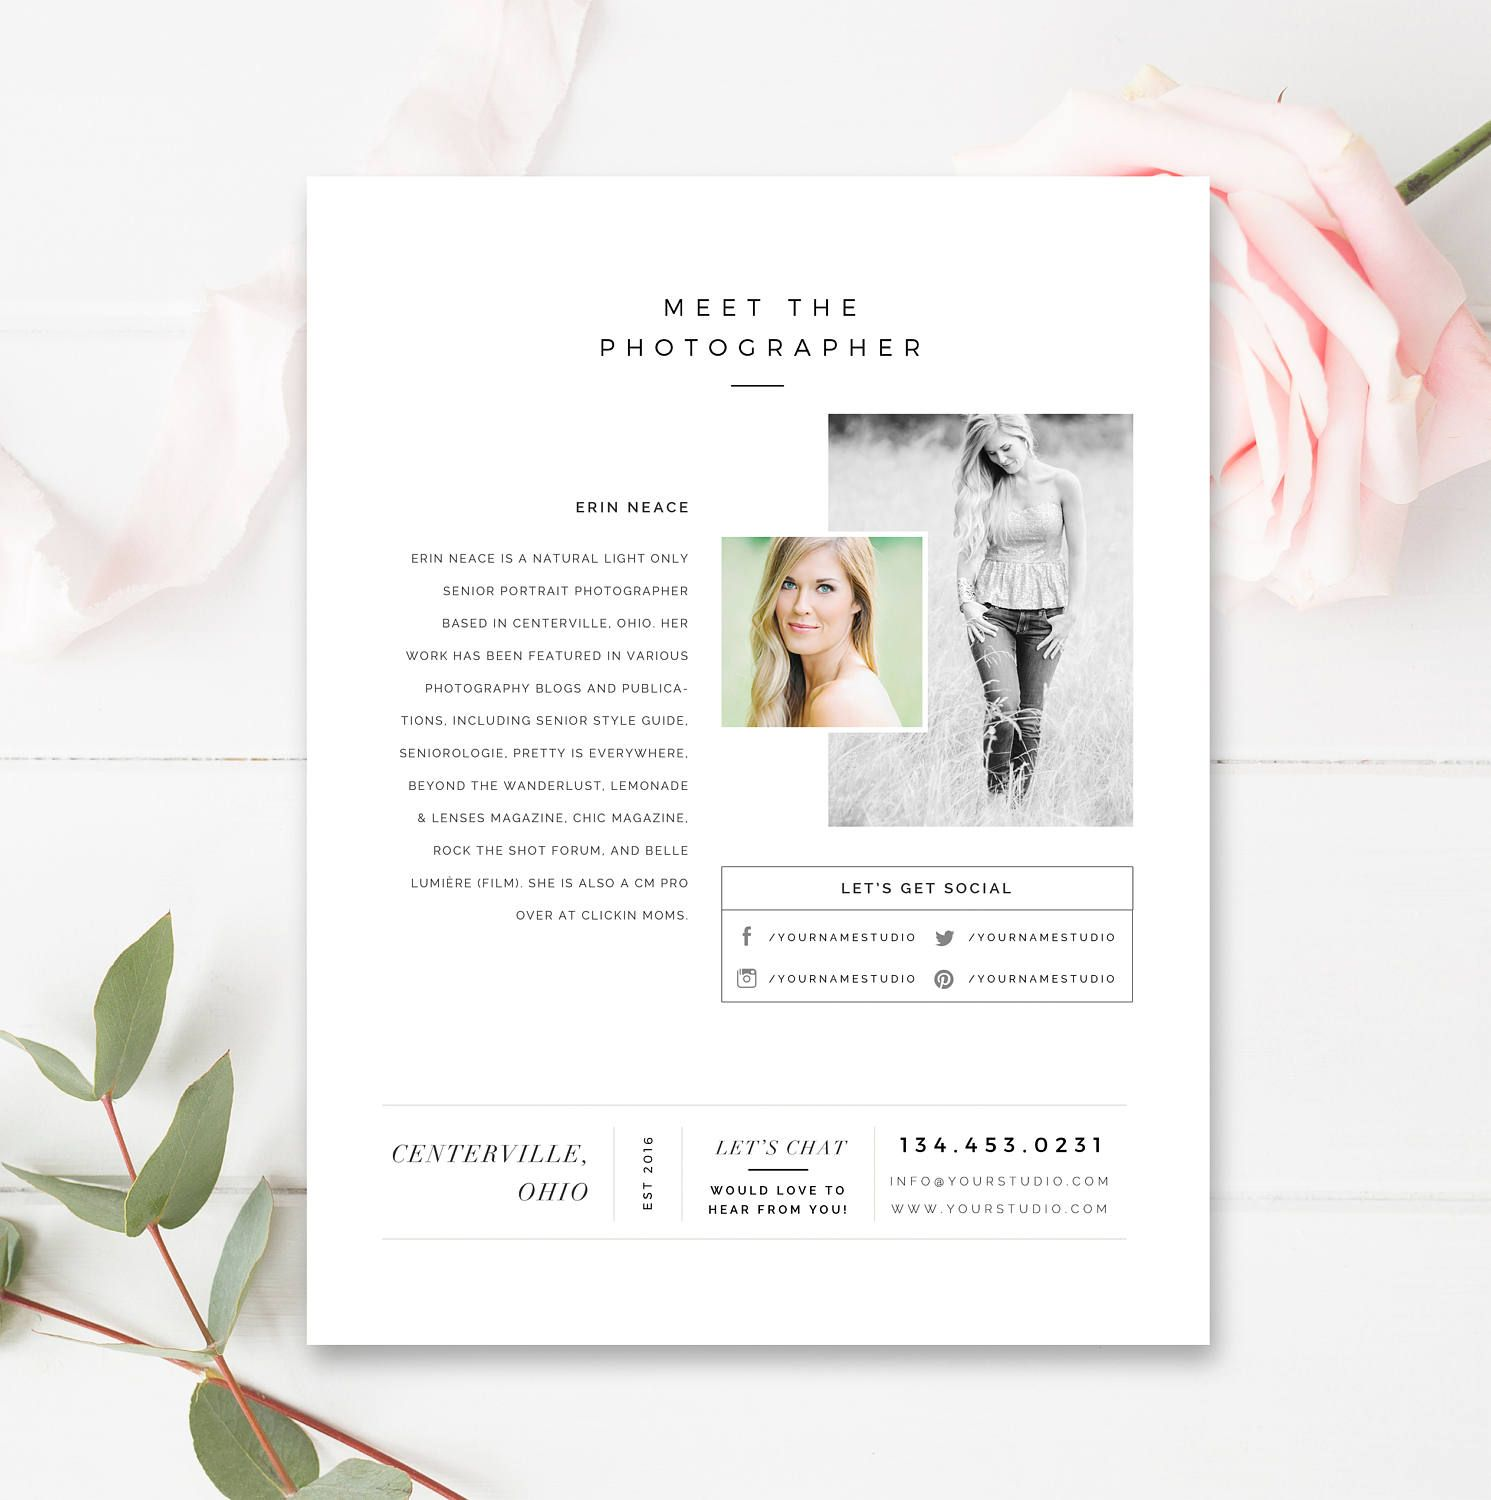 About Me Page Template For Photographers Photography Etsy Photo Marketing Templates Photography Templates Marketing Photos